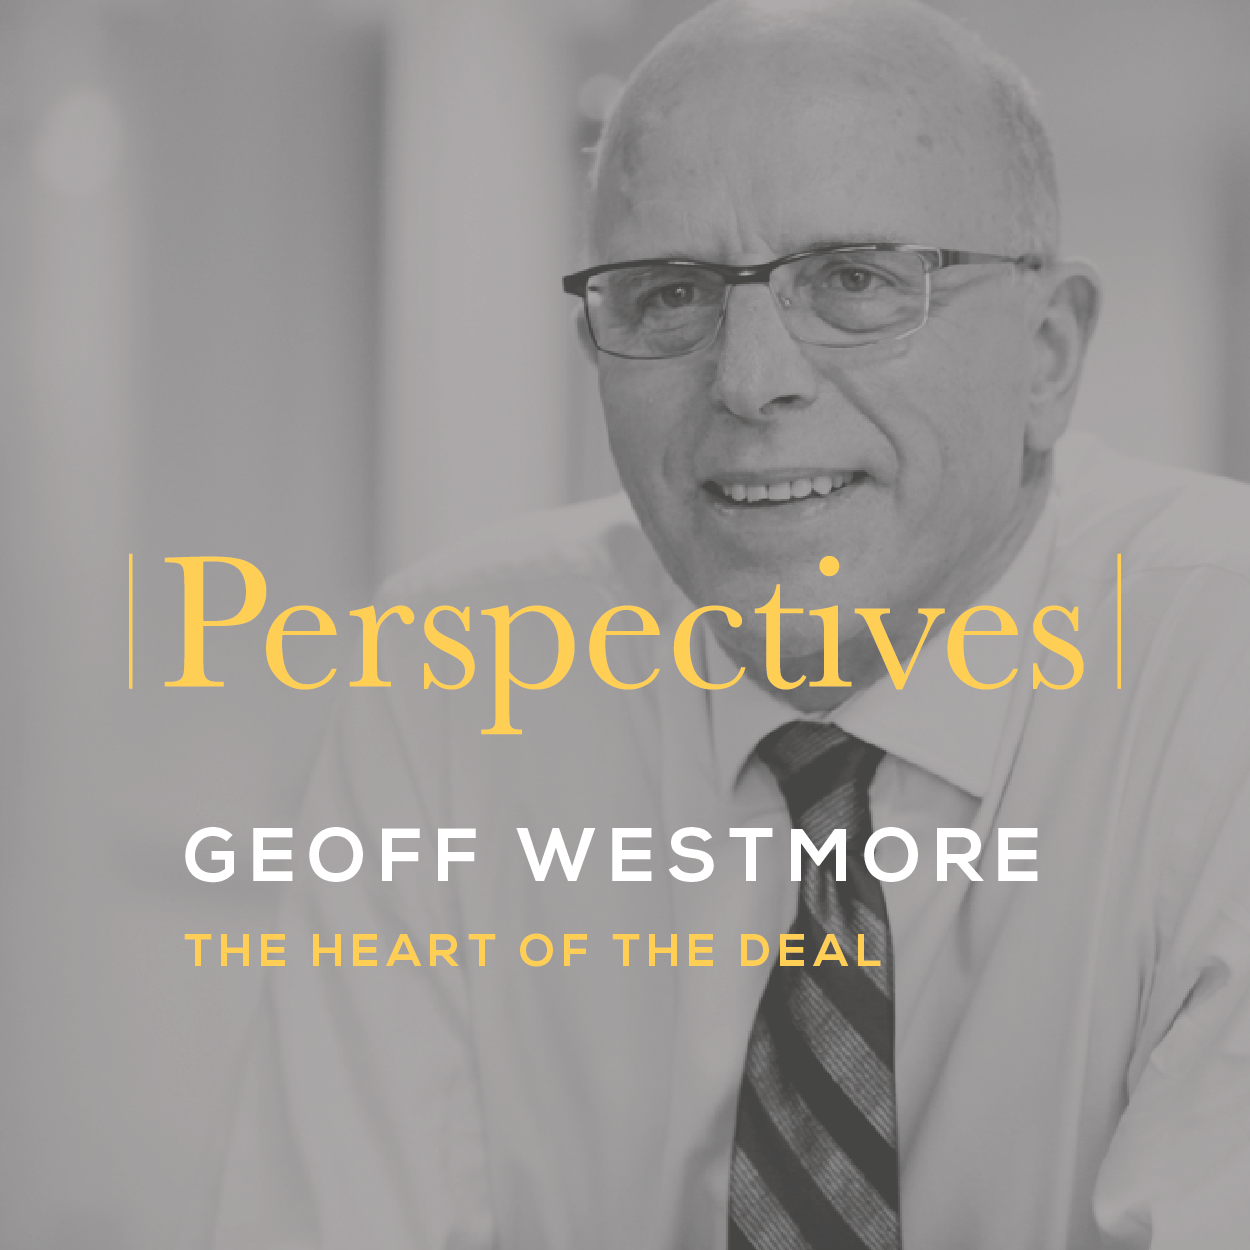 Perspectives - Geoff Westmore_1.png